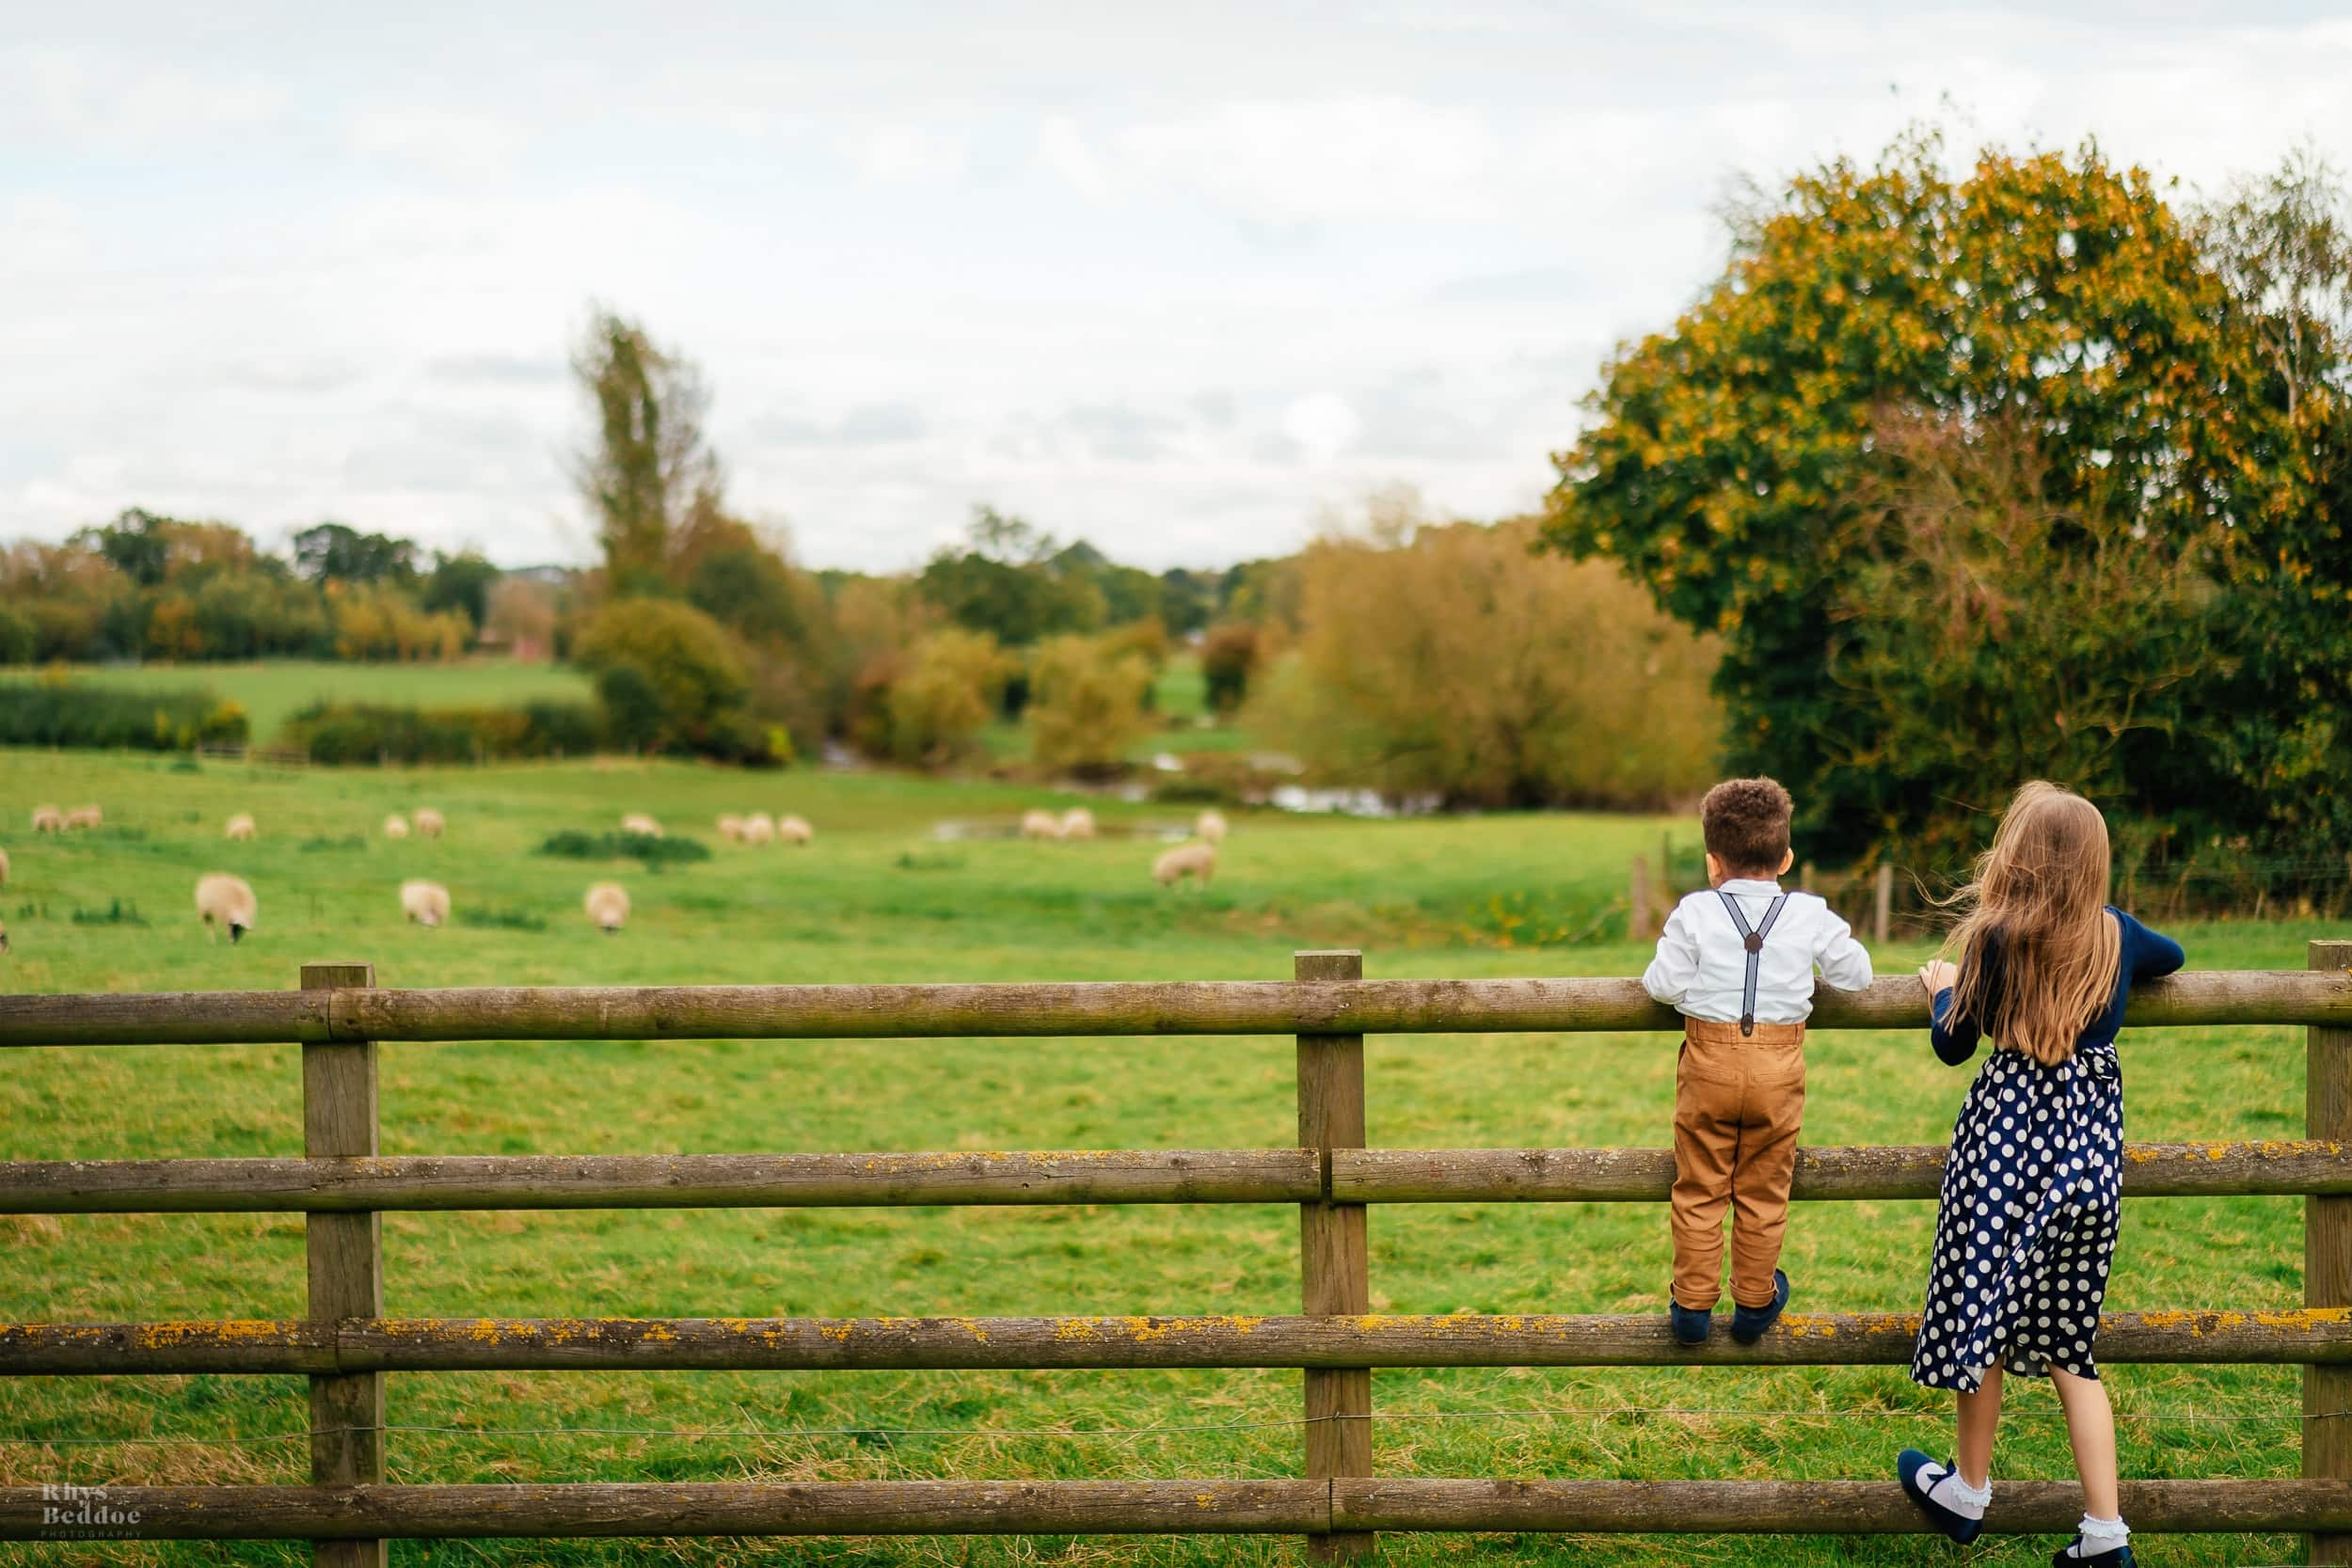 Child climbing on the fence to look at sheep